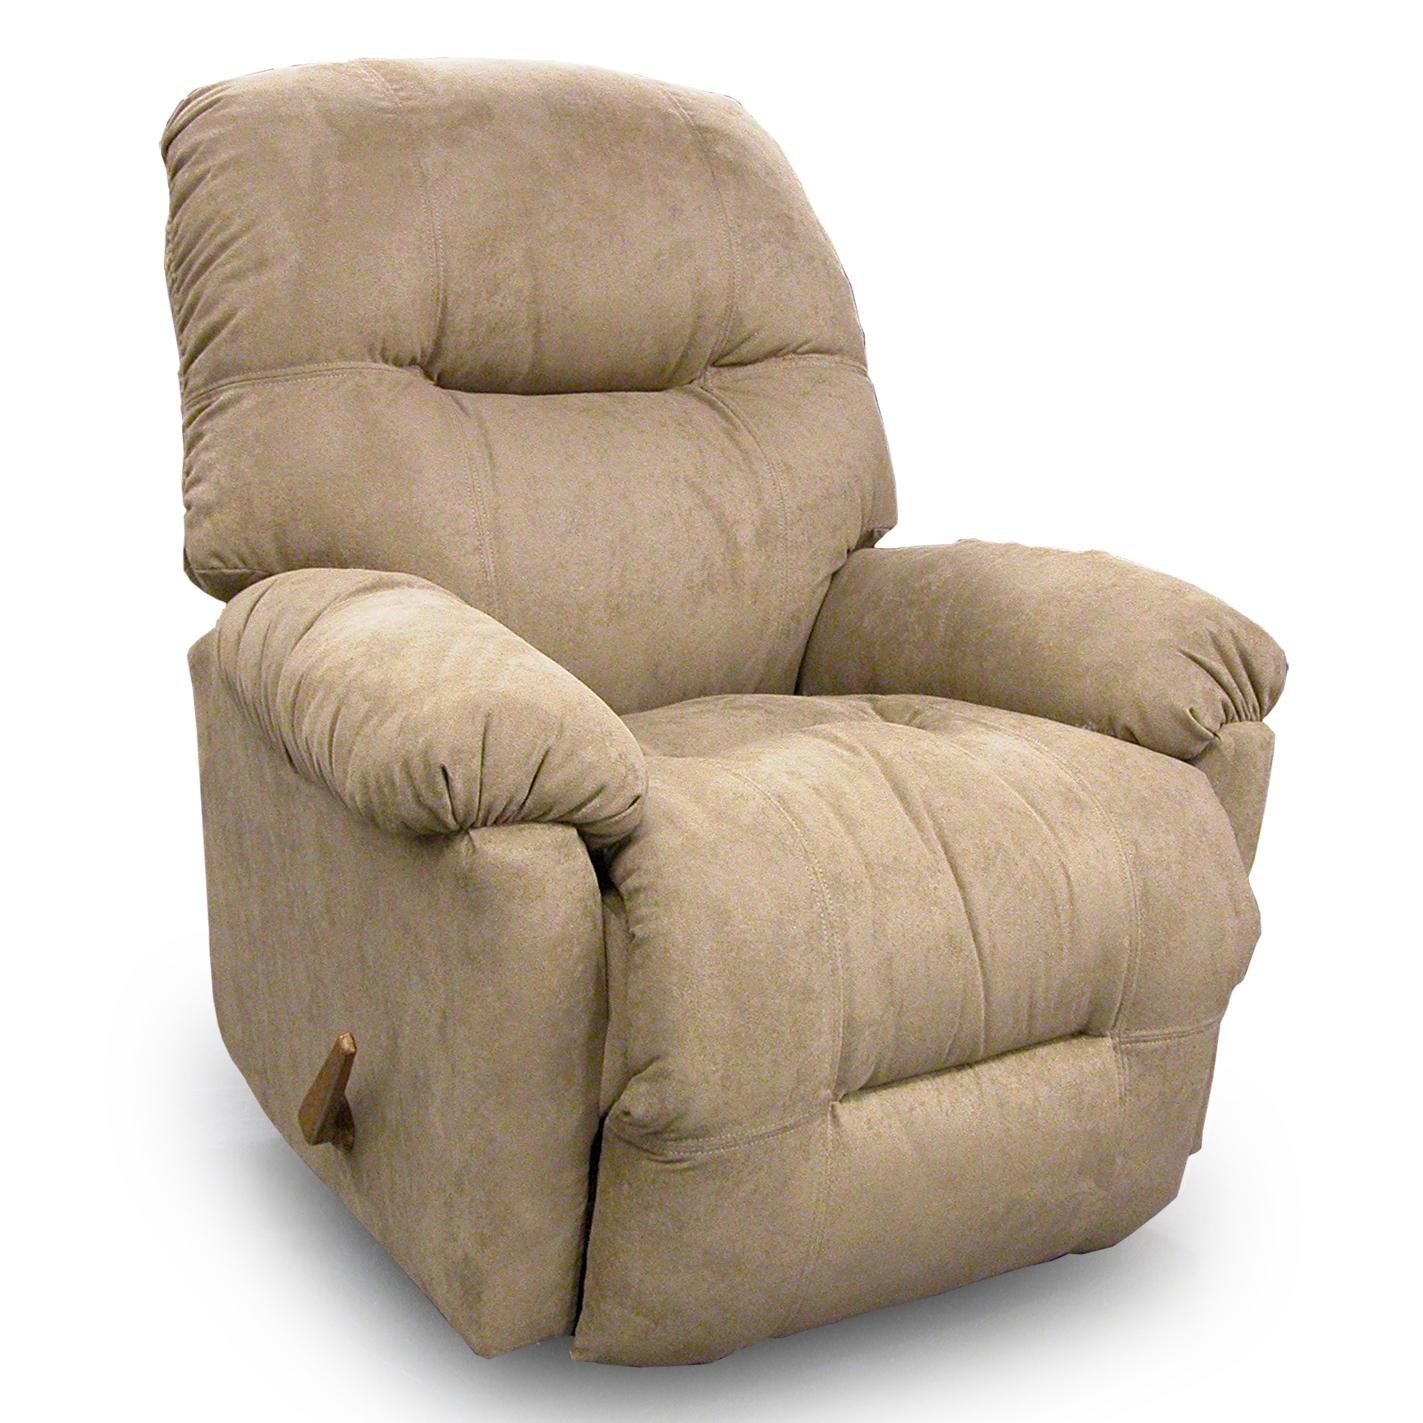 Best Home Furnishings Recliners   Petite Wynette Power Lift Reclining Chair